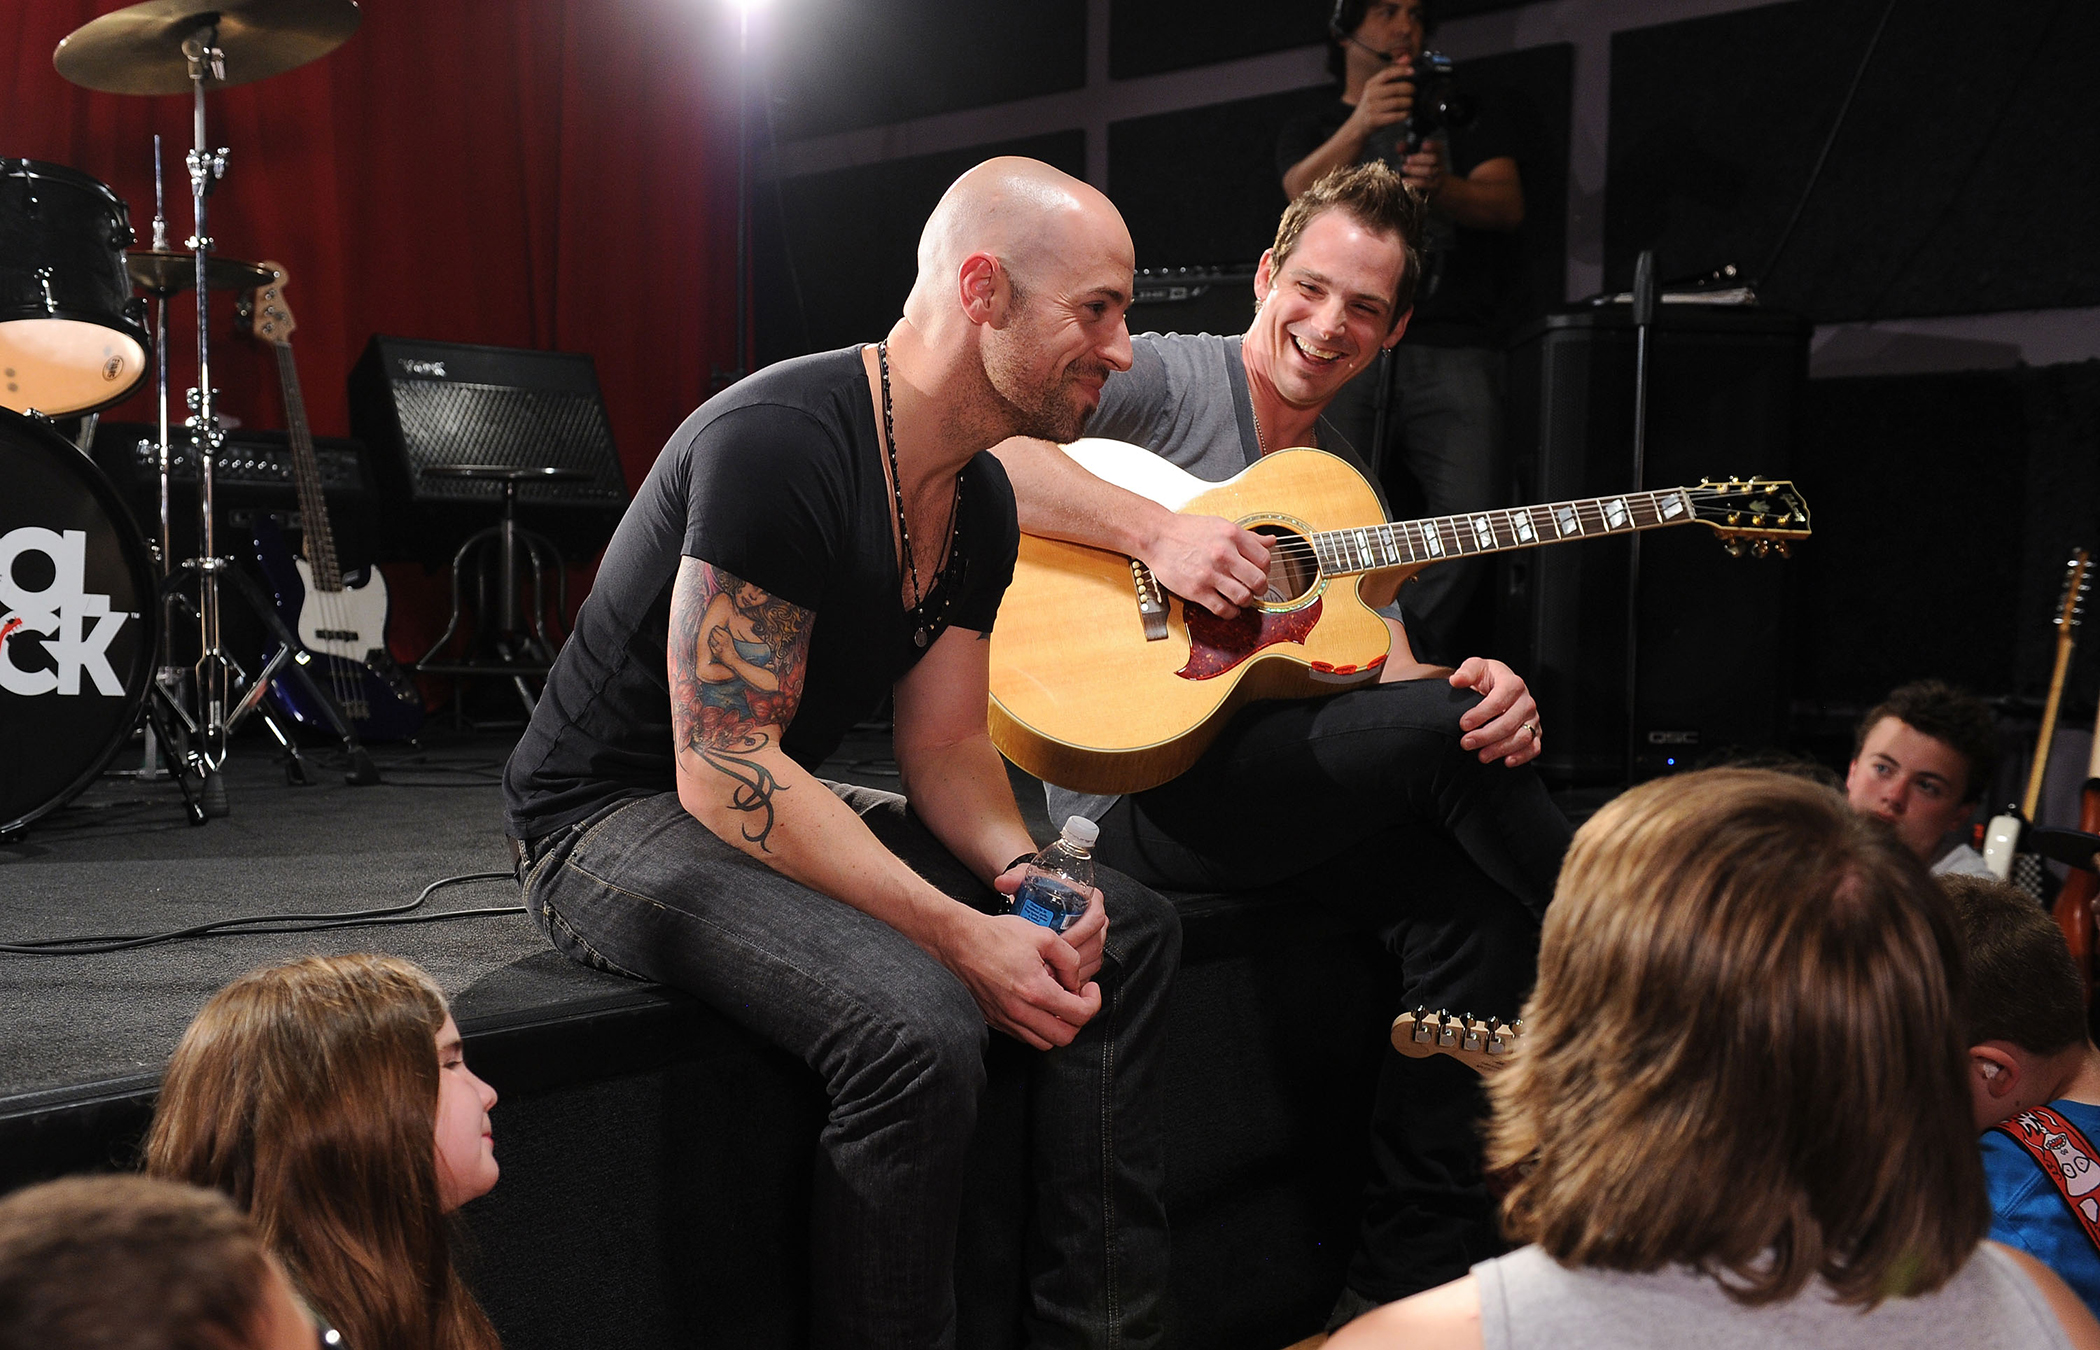 Chris Daughtry and bandmate Brian Craddock at the School of Rock on July 19, 2012 in Tenafly, New Jersey.